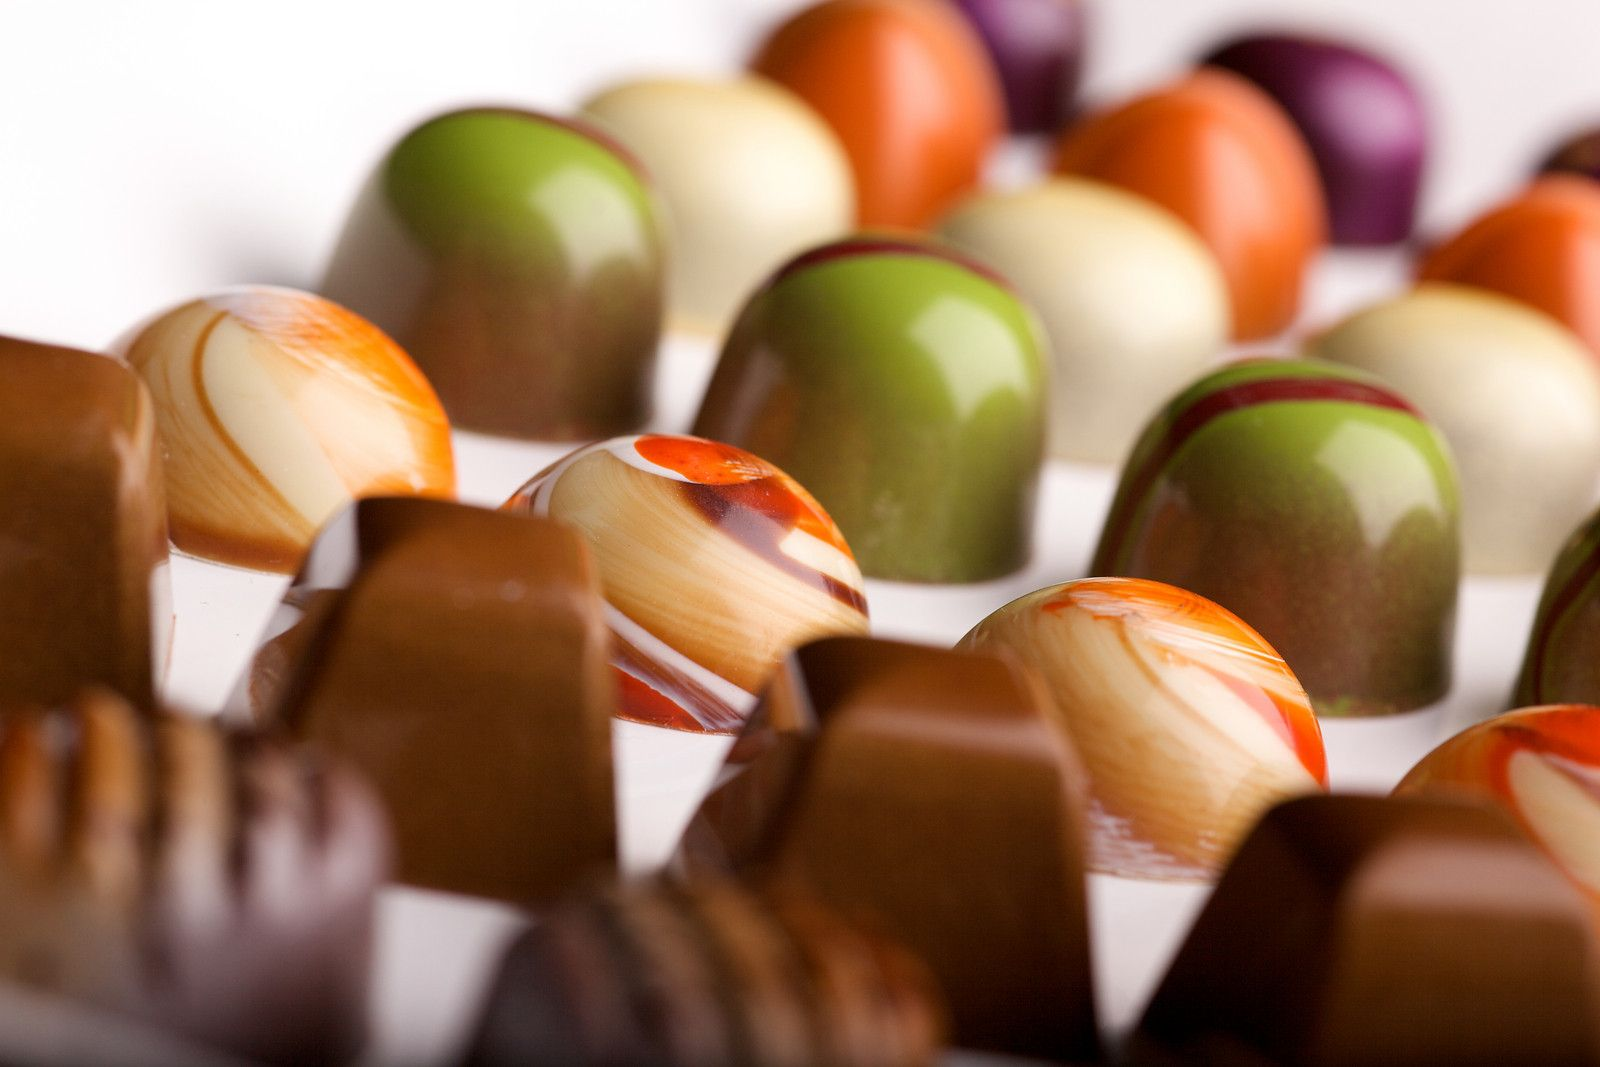 Normal Love Confections offers 36 core flavors including Praline, Tahitian Caramel, Pumpkin, Pistachio Cherry and others.